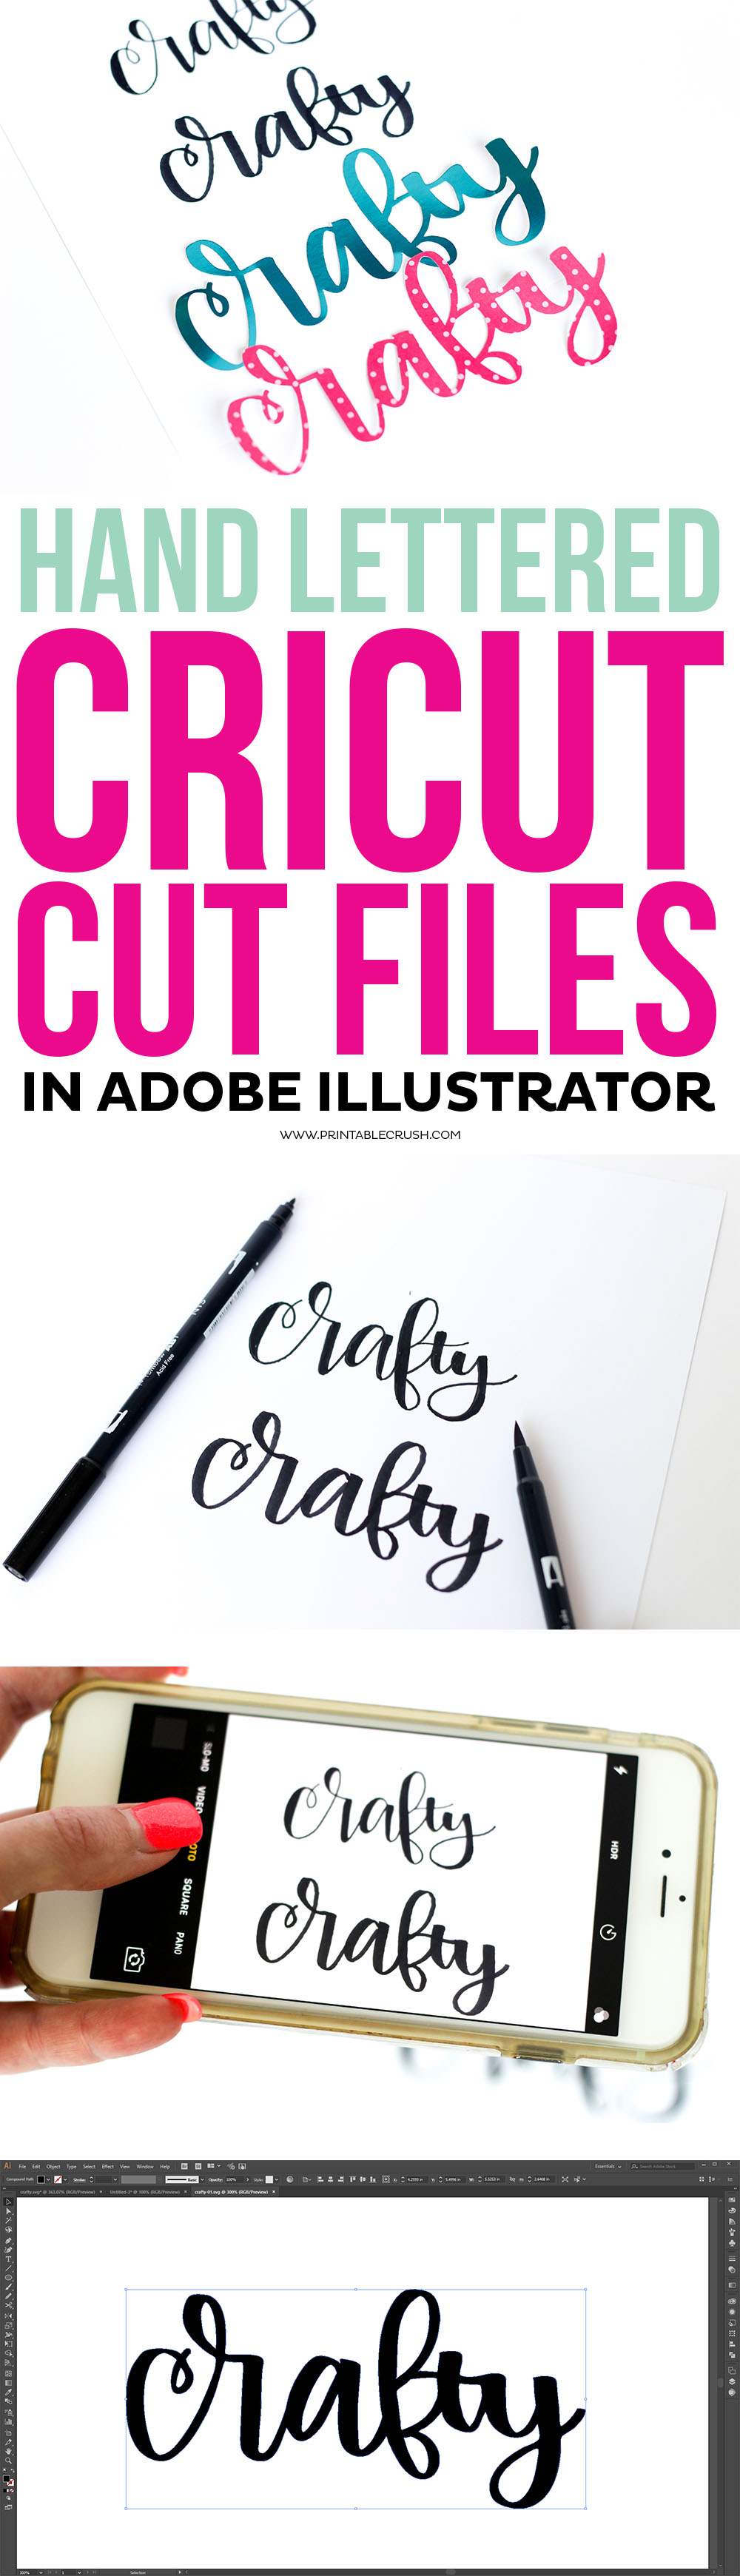 Learn how to Create Hand Lettered Cricut Cut Files in Adobe Illustrator! This is a great Cricut project for beginner letterers and designers.